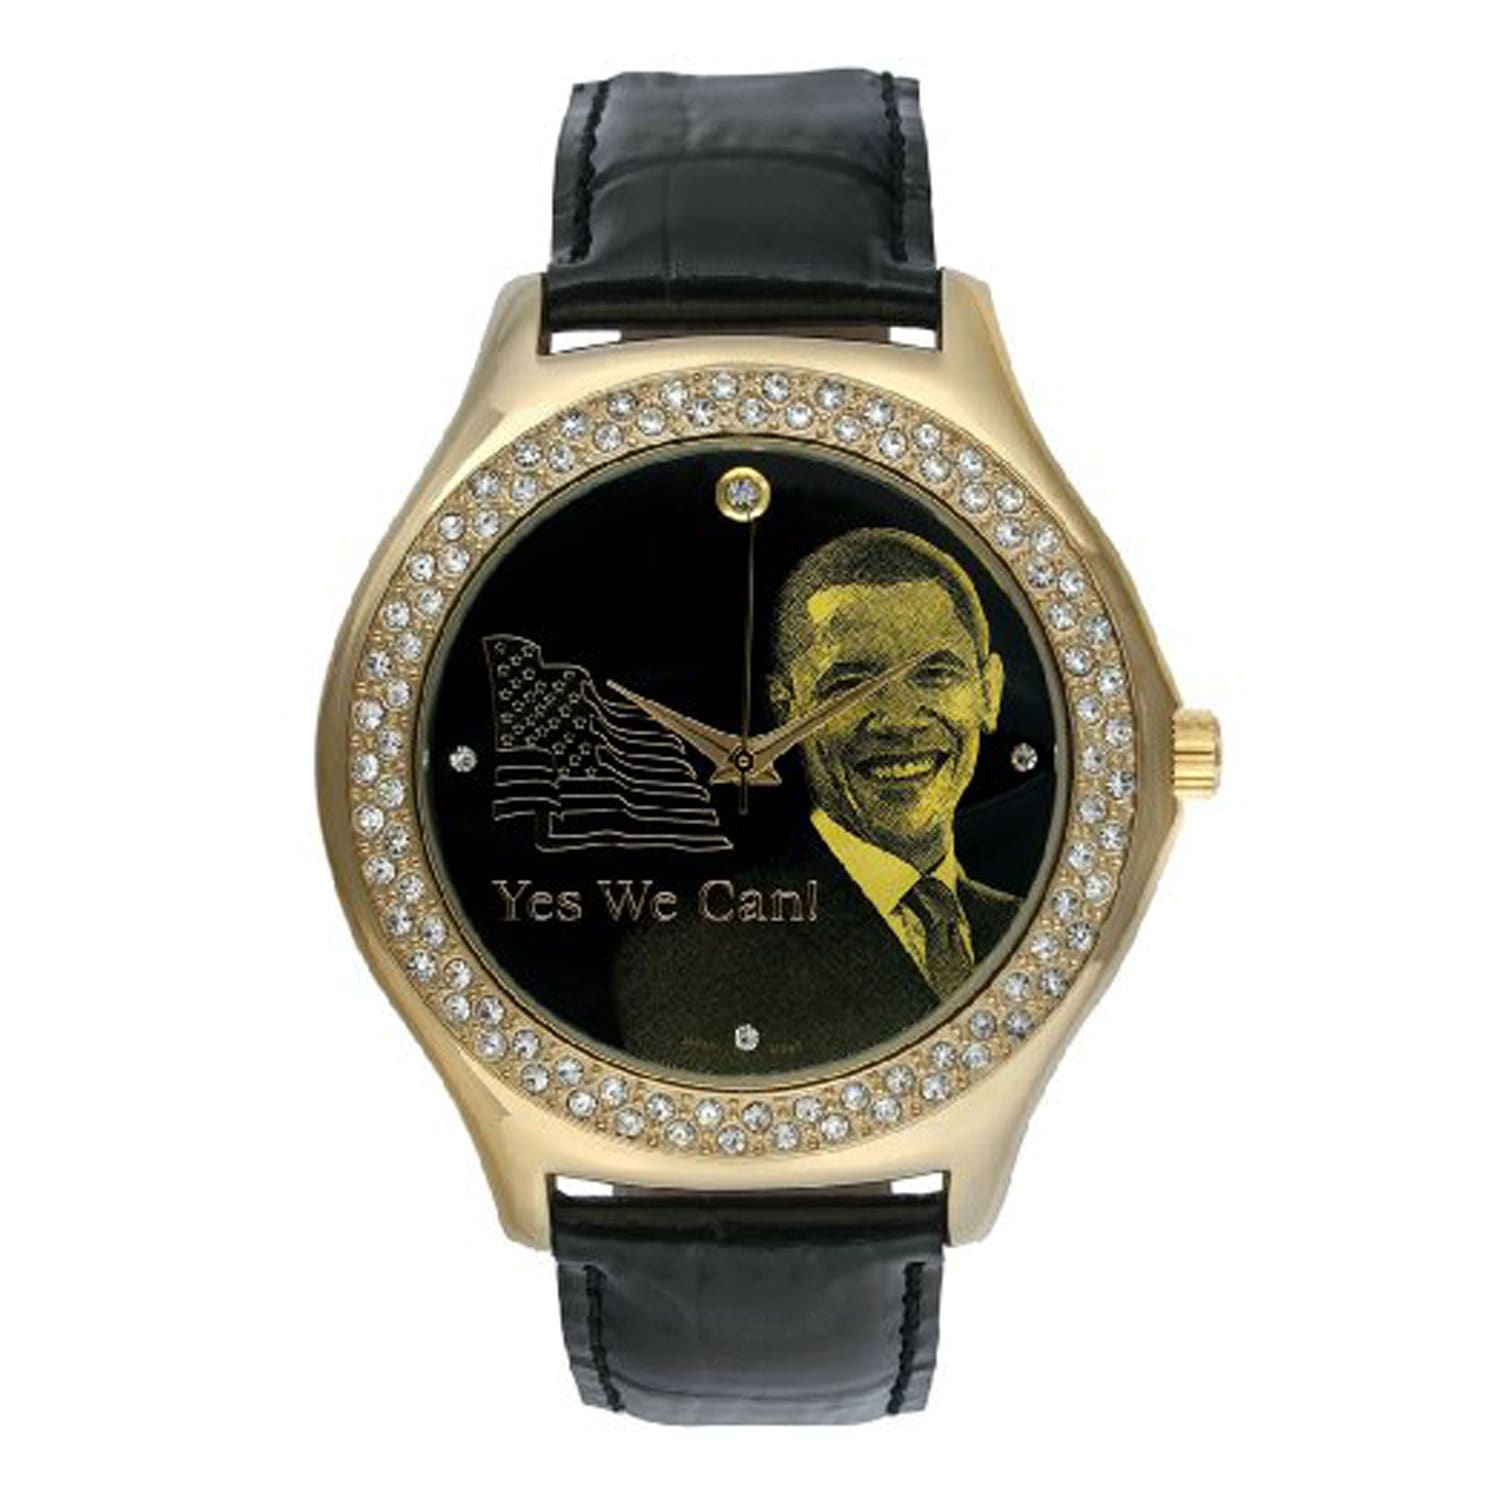 Barack Obama BO-2192 Men's Black Leather Strap Inauguration Watch